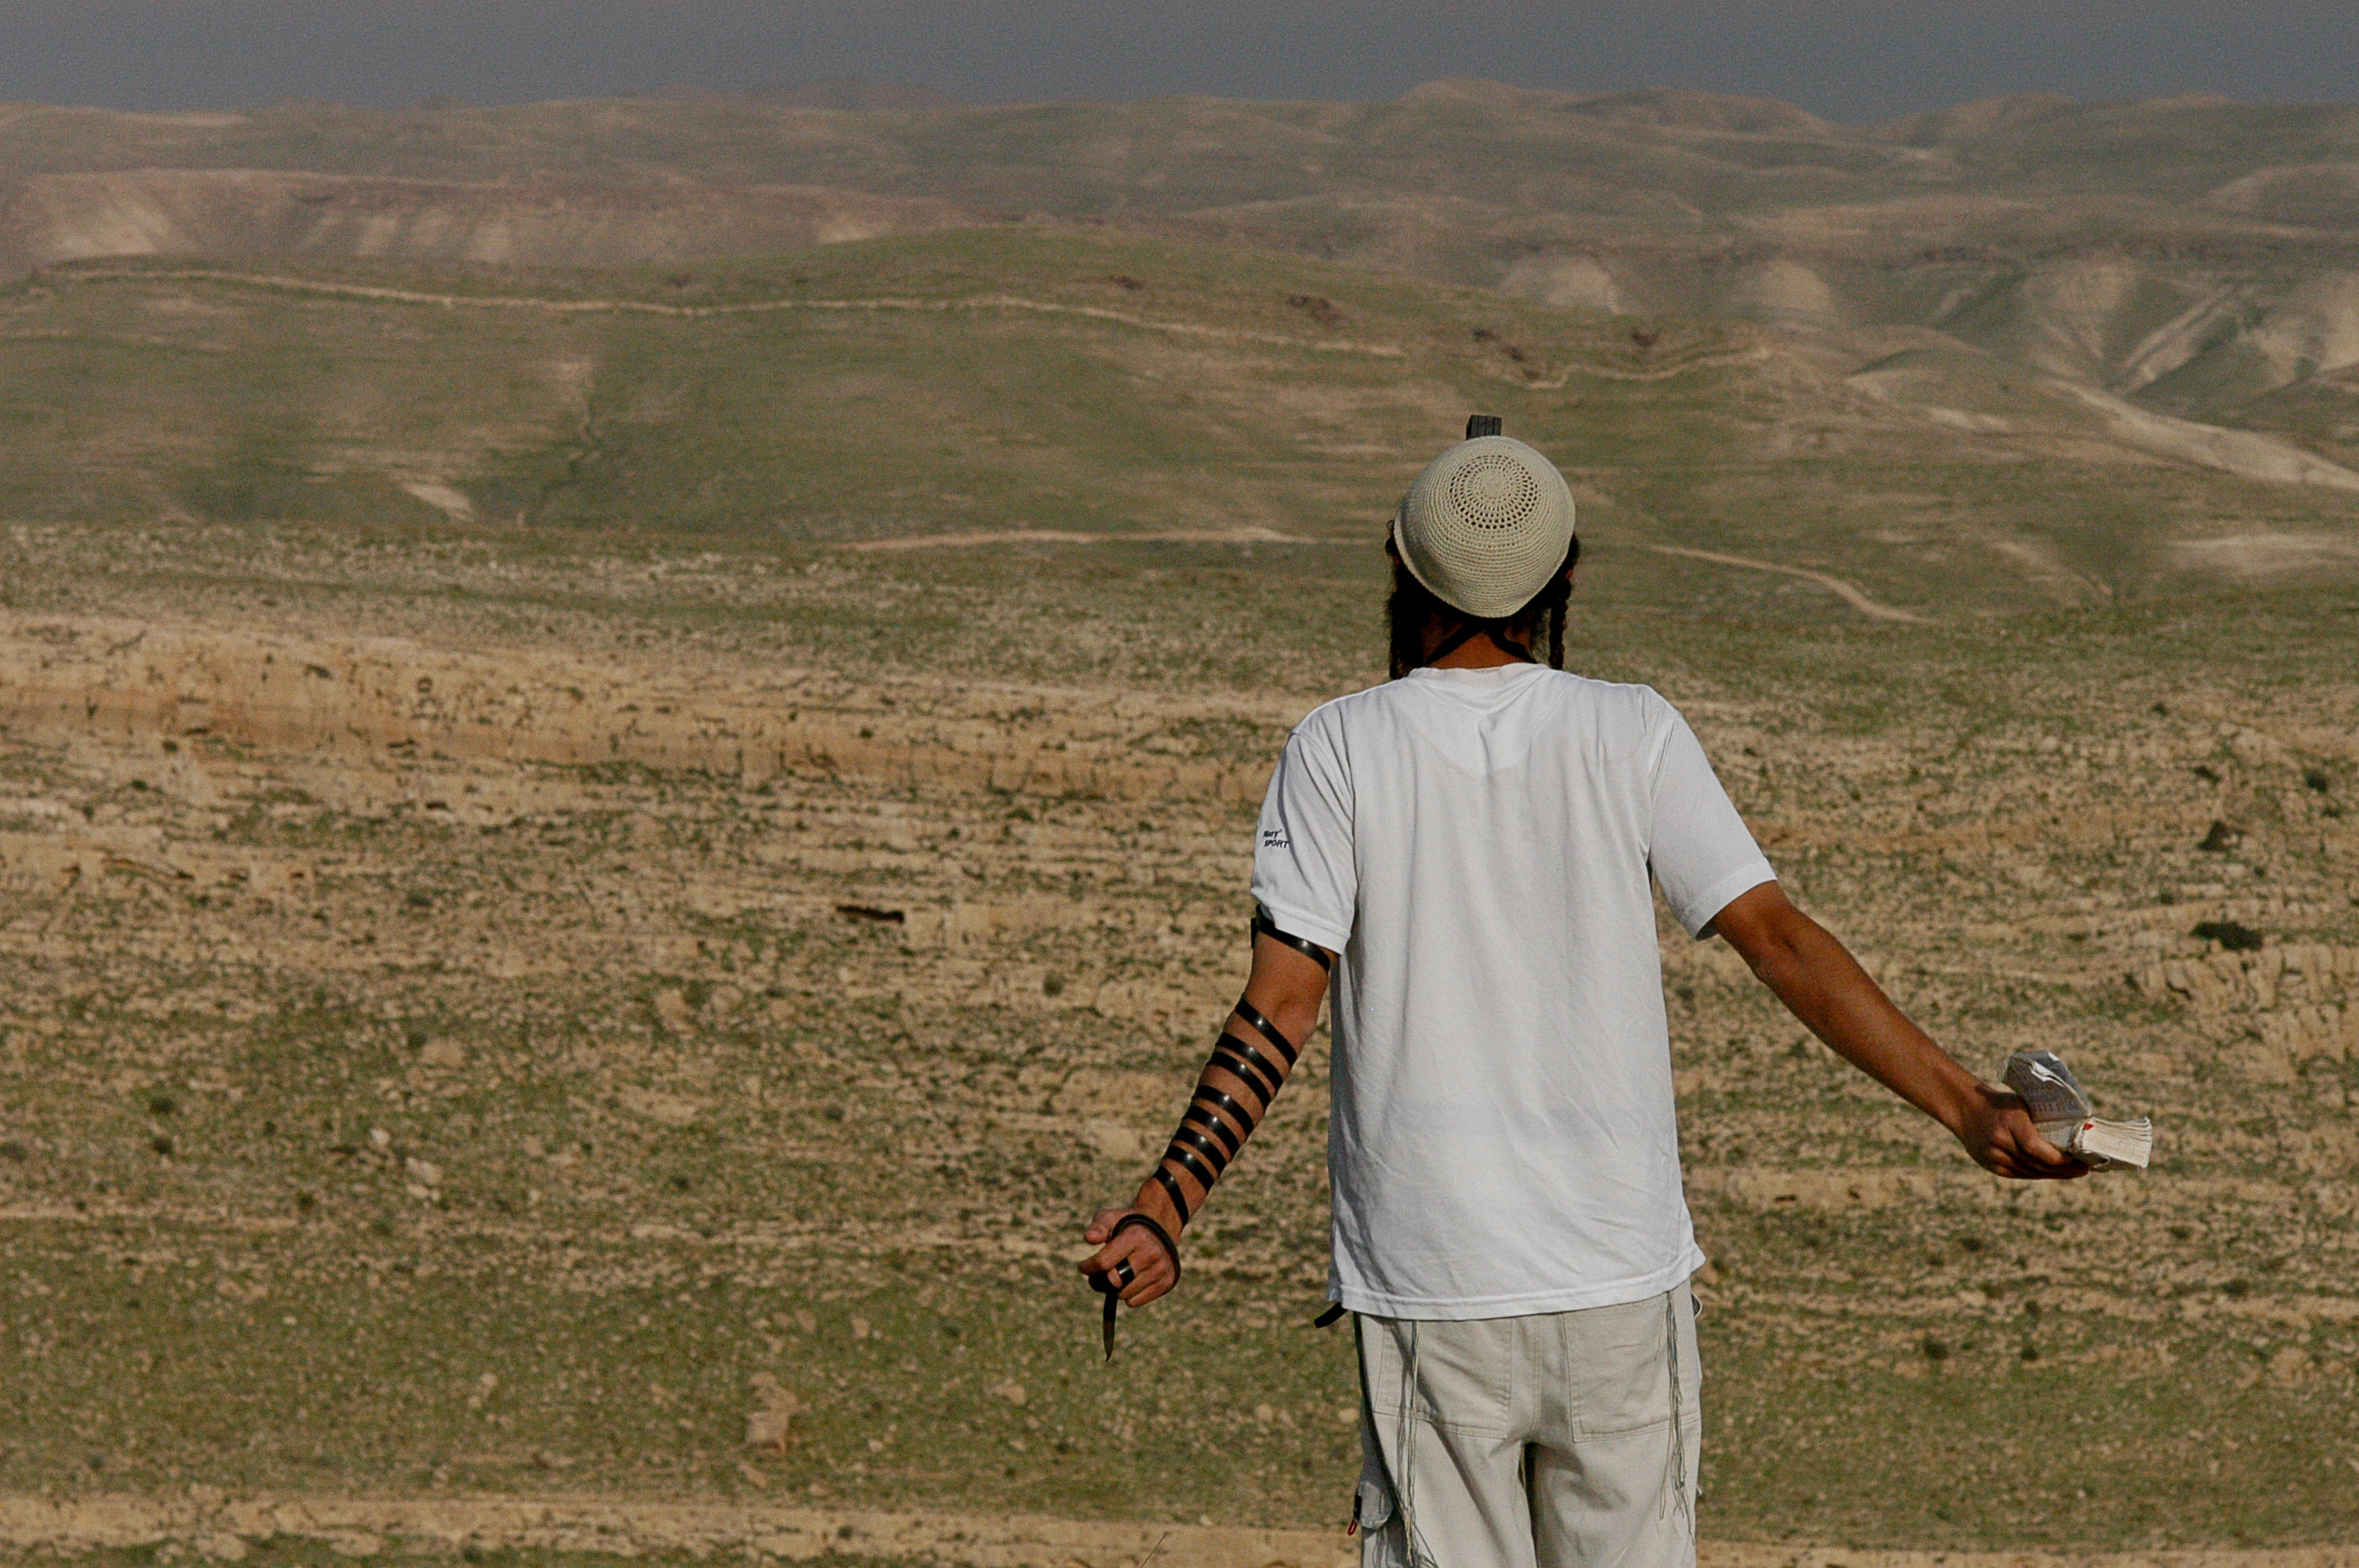 Facing east towards the Judean desert, a Jewish settler conducts a mid-day prayer, at the unauthorized Jewish outpost of Tekoa D, West Bank.  March 1, 2004 Photo by Ahikam Seri/backyard